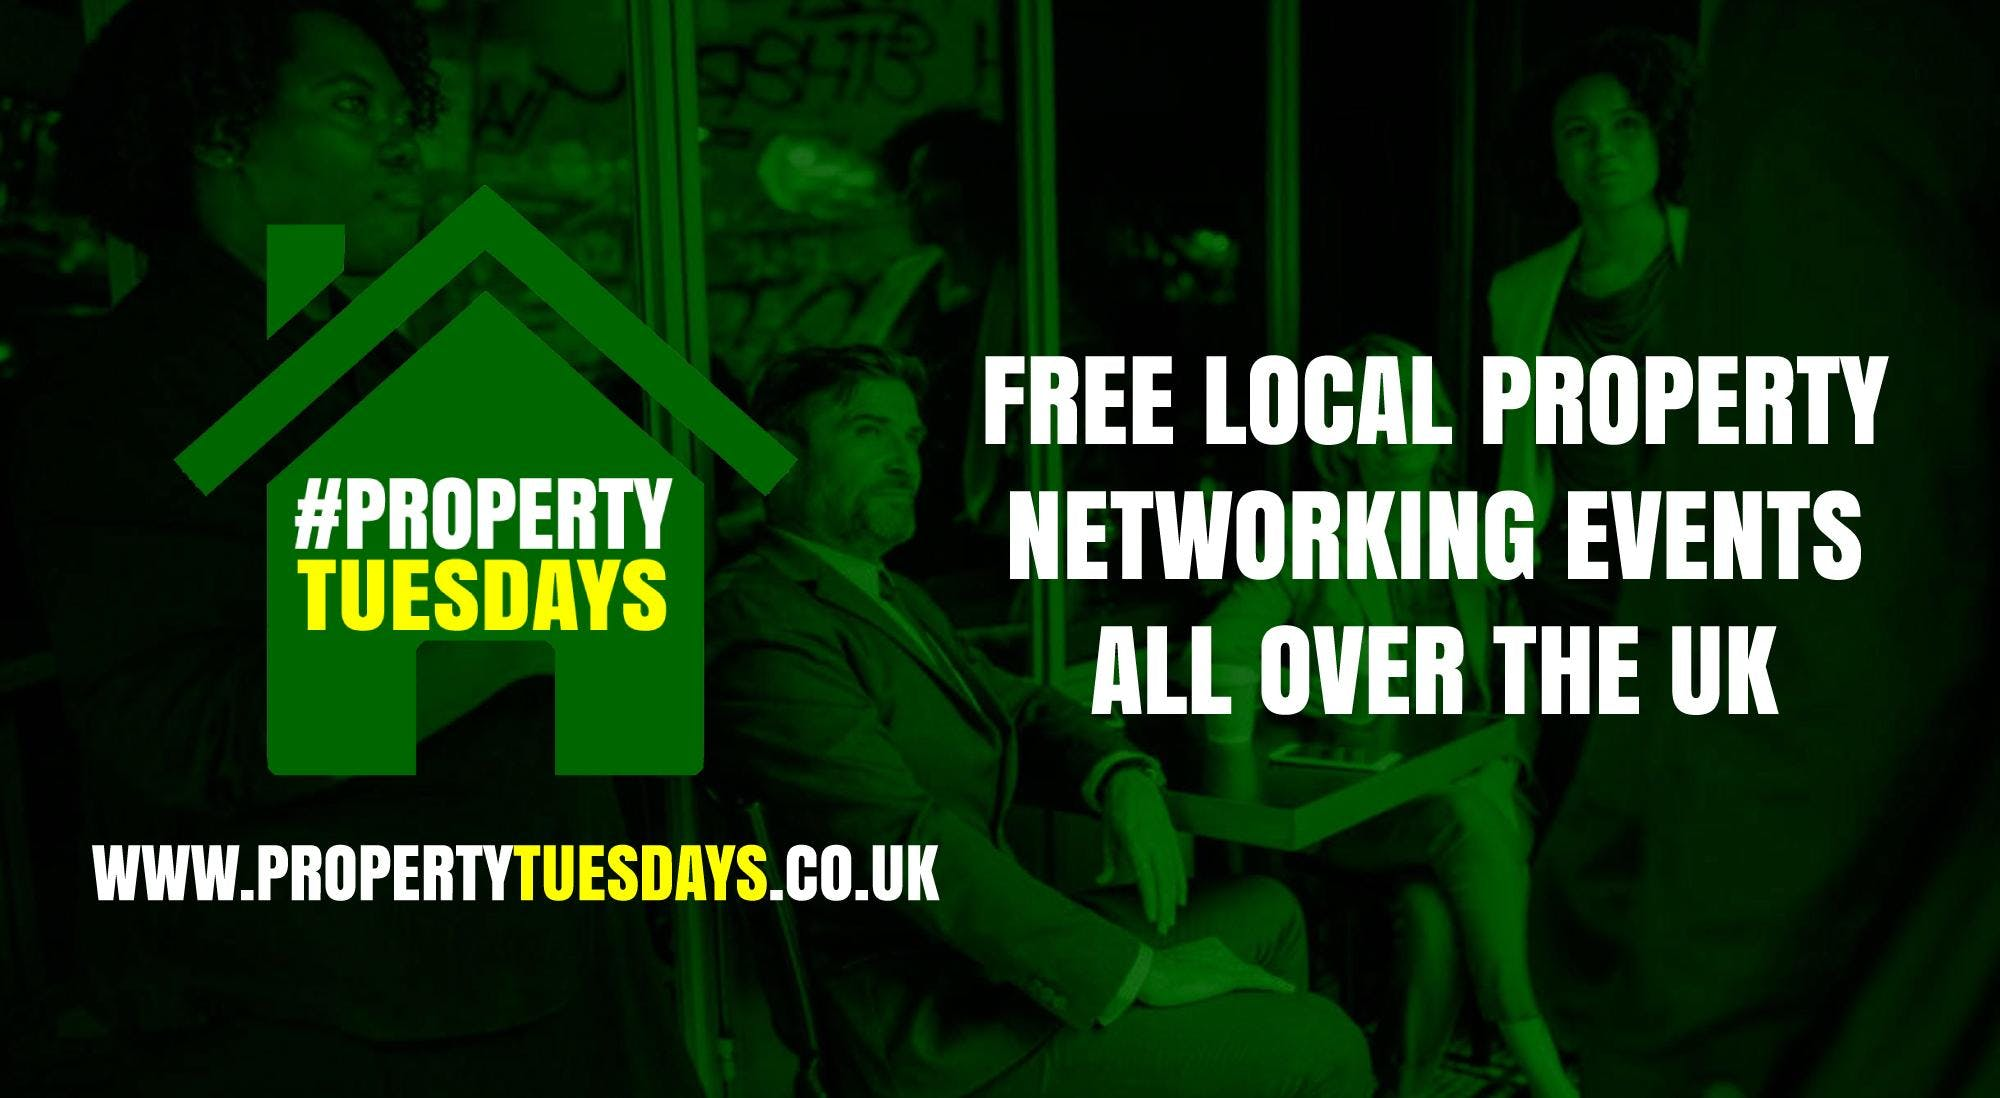 Property Tuesdays! Free property networking event in Rotherham